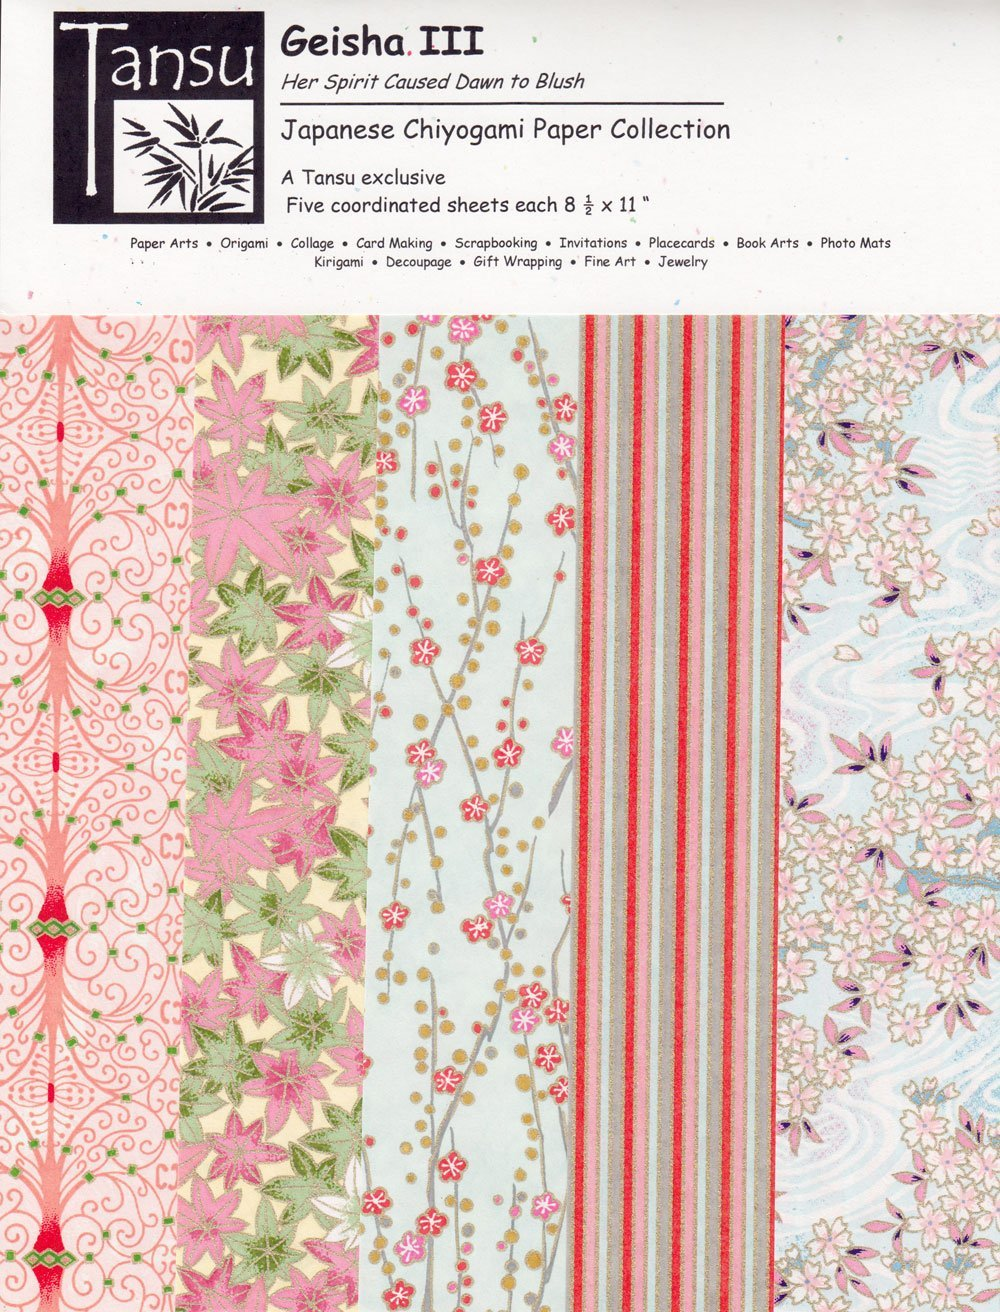 Japanese Chiyogami Papers Spring Beheld Her with Delight Geisha I